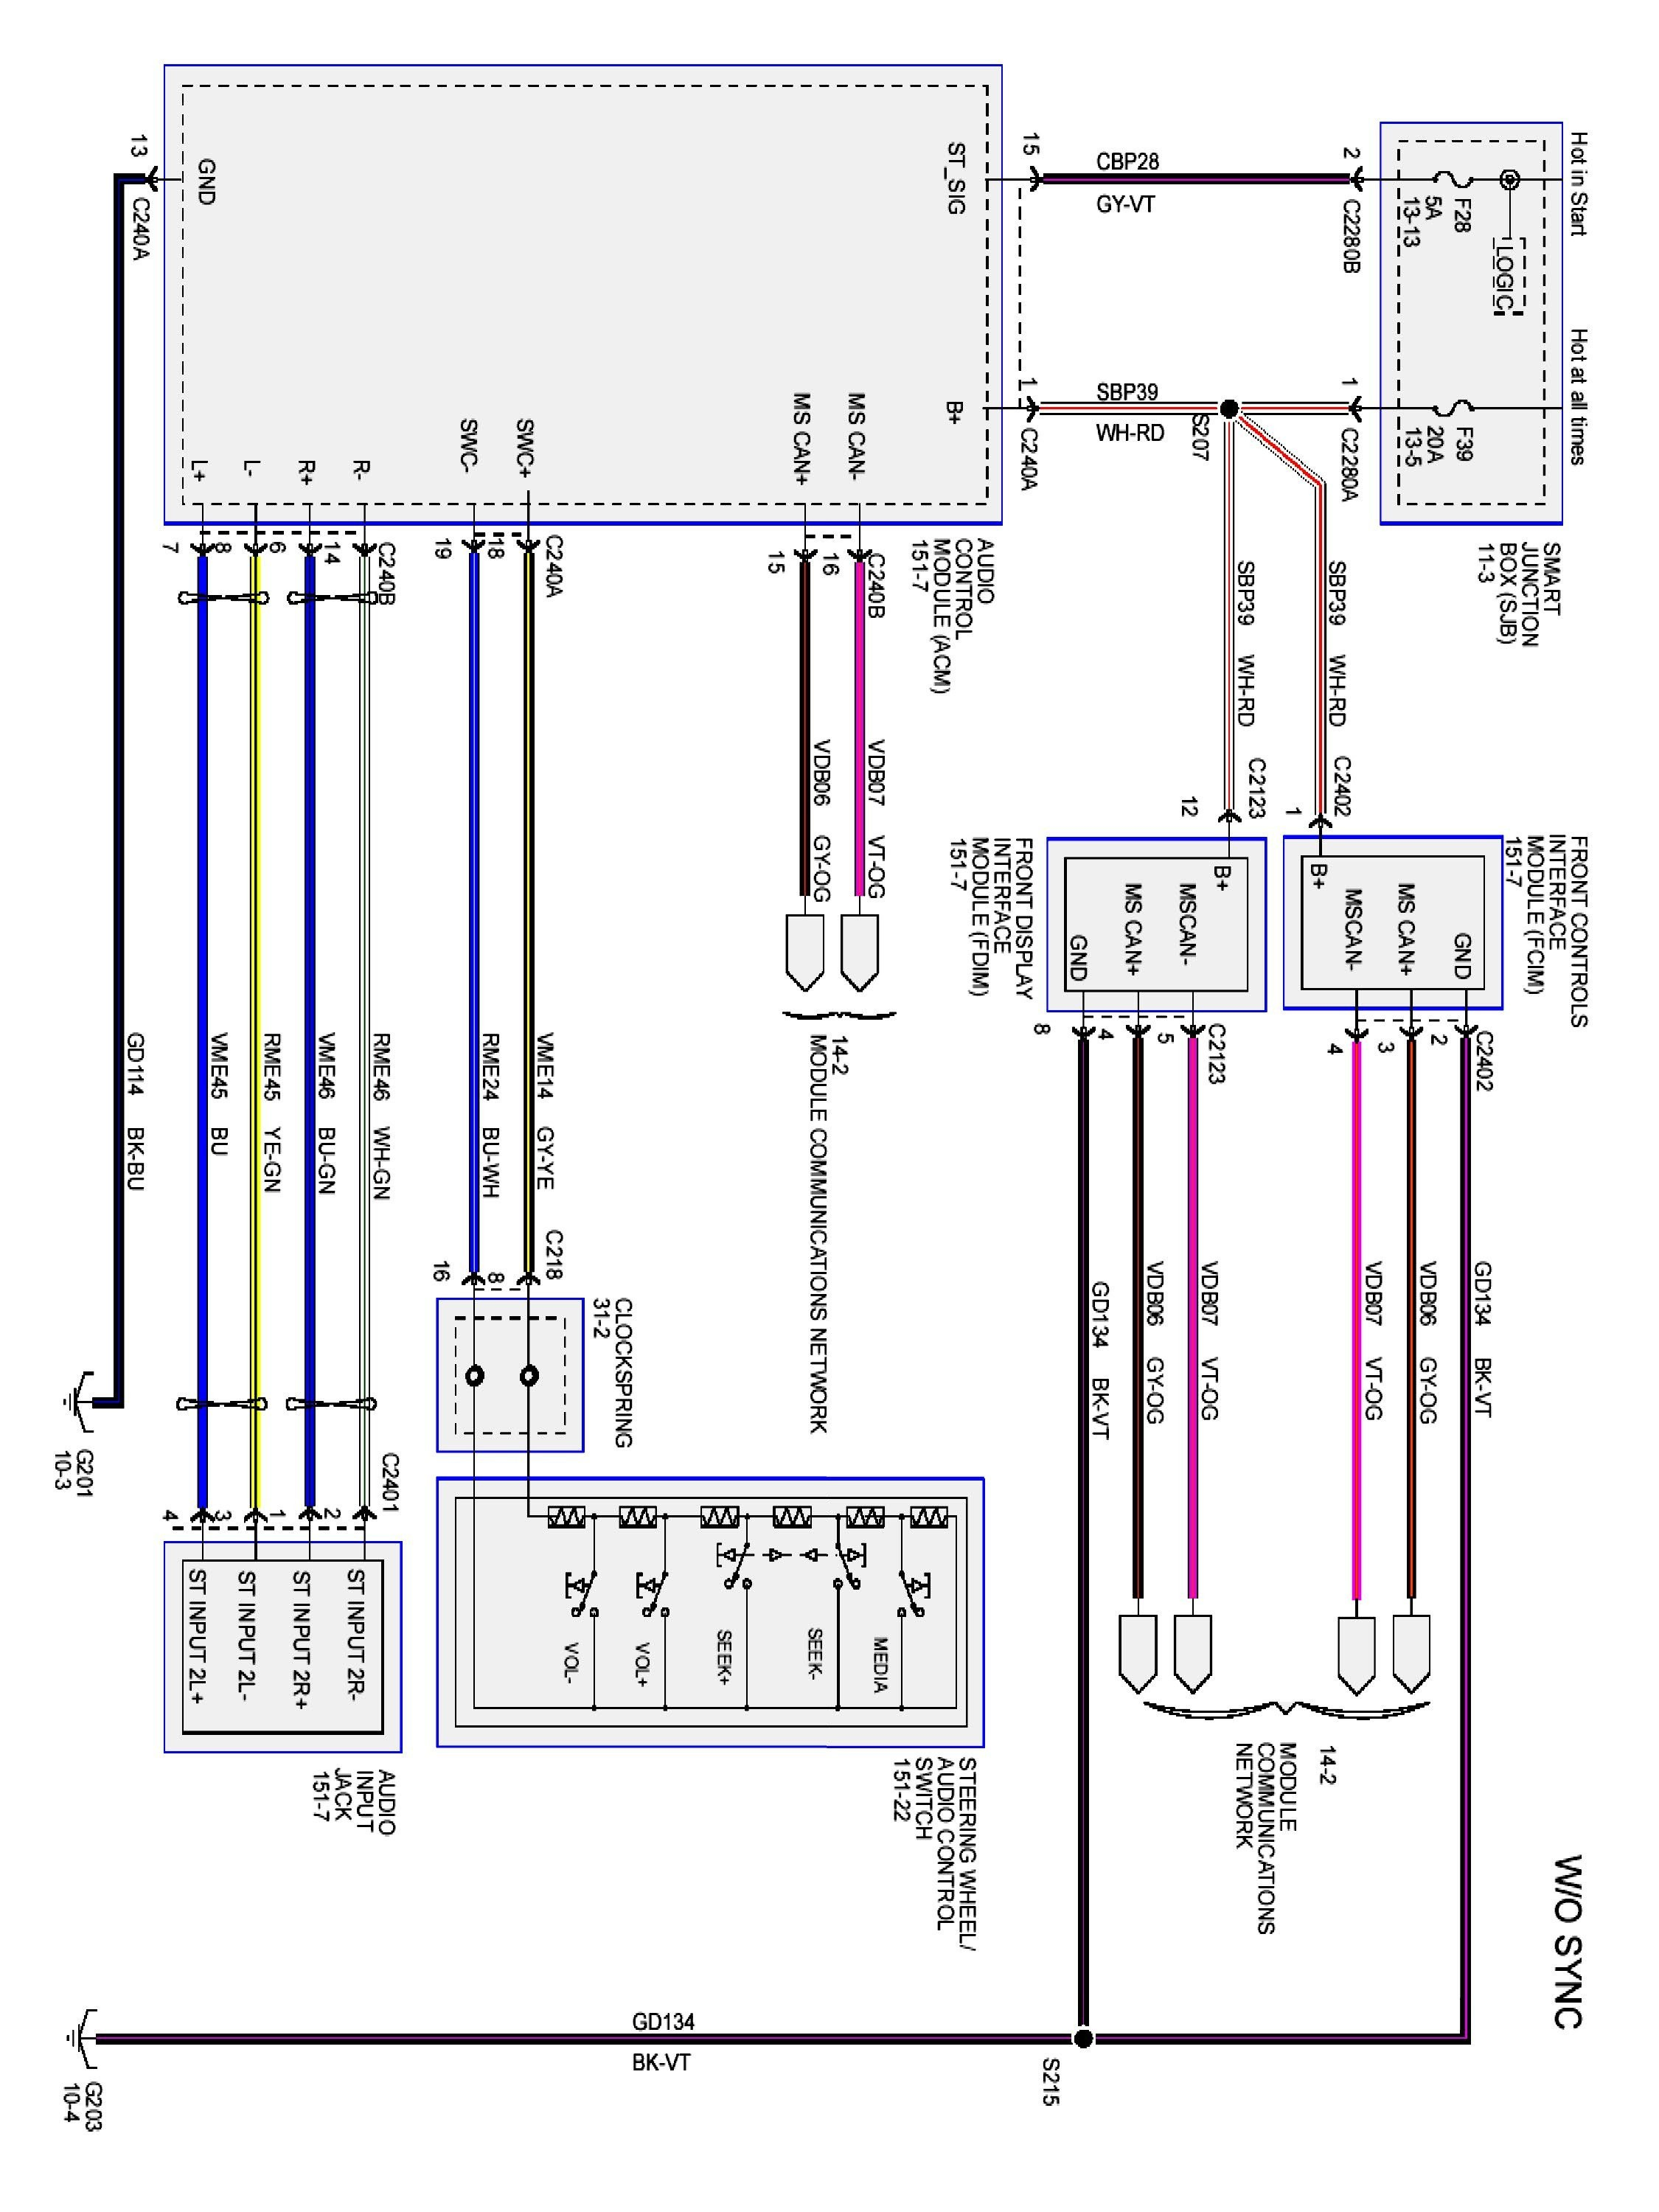 1999 ford Expedition Engine Diagram 2 2003 F350 Wiring Diagram Starting Know About Wiring Diagram • Of 1999 ford Expedition Engine Diagram 2